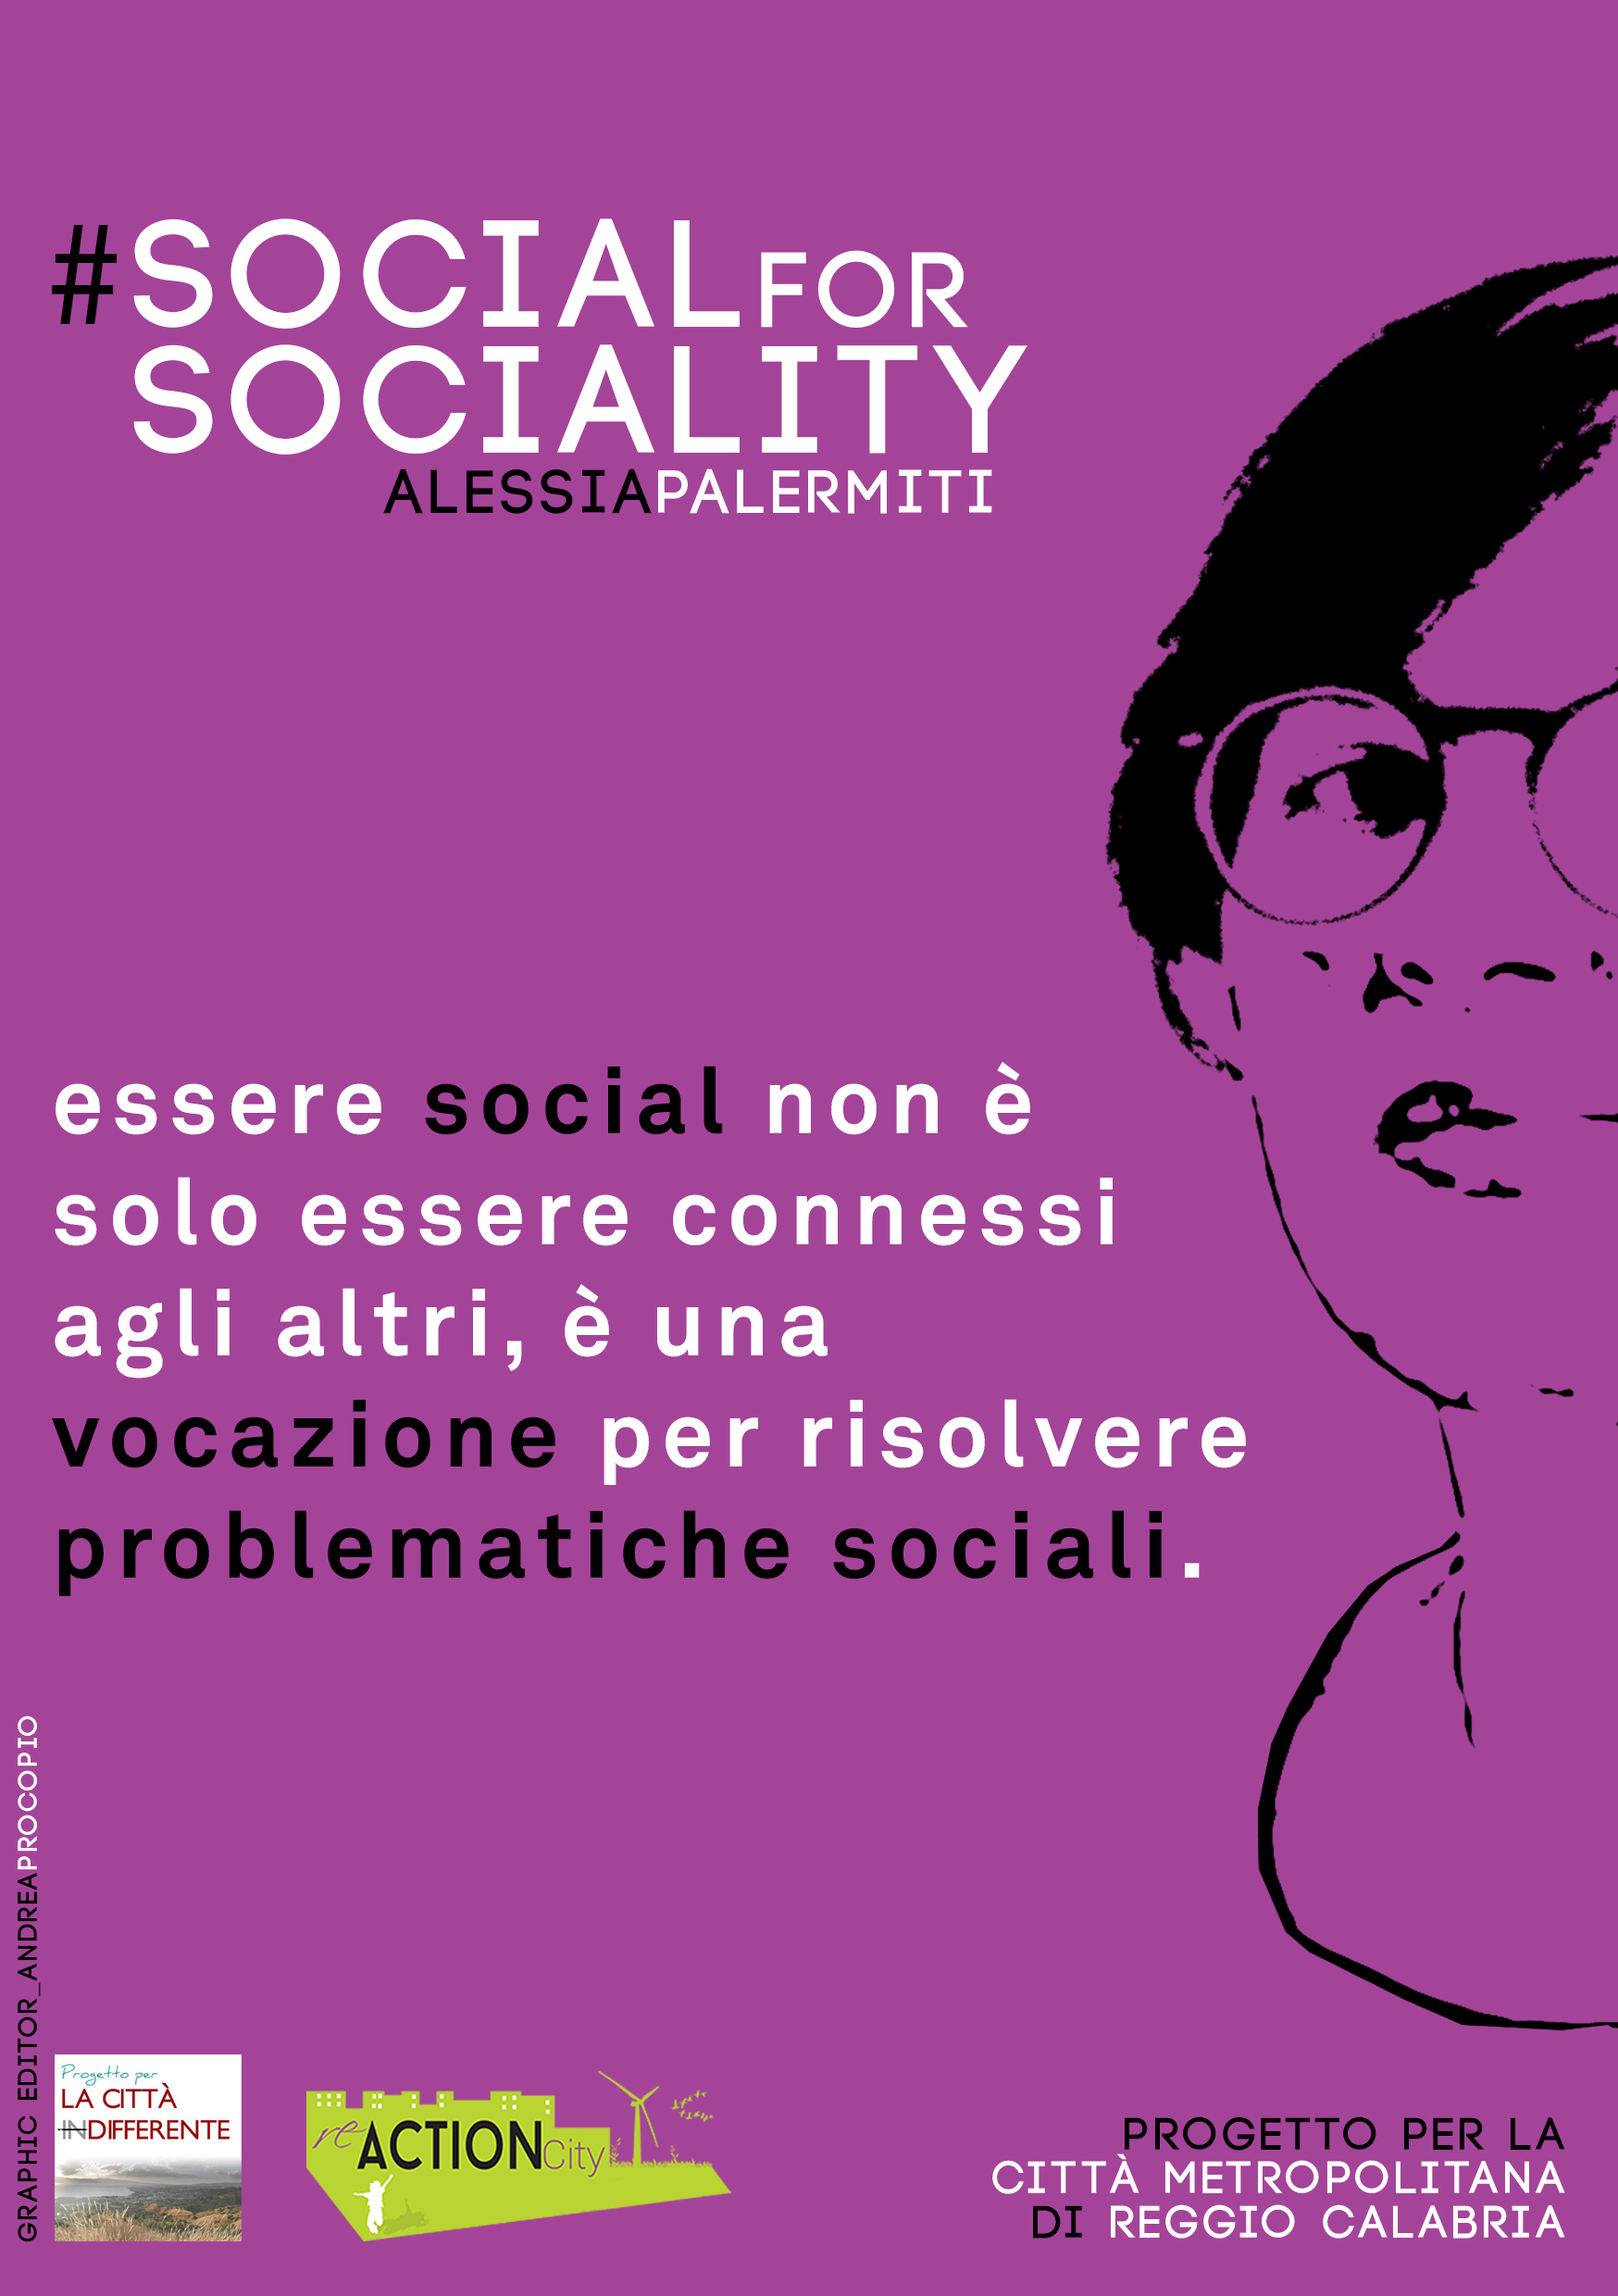 post-it_A.Palermiti #socialforsociality.jpg